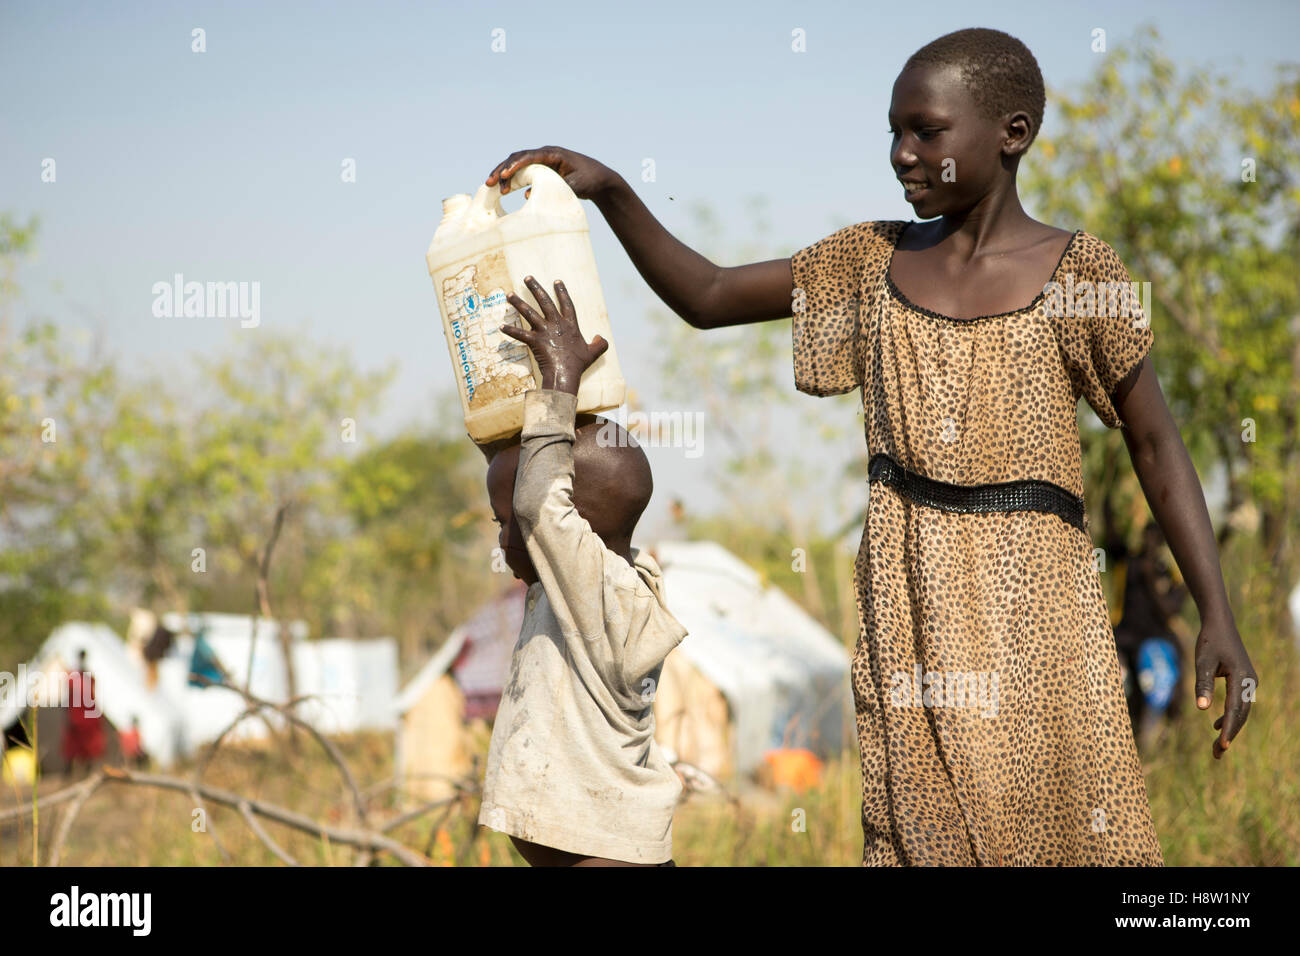 Agogo, UNHCR camps for refugees from South-Sudan, located 5 km from the town of Adjumani in North-Uganda. Nov, 2016. - Stock Image